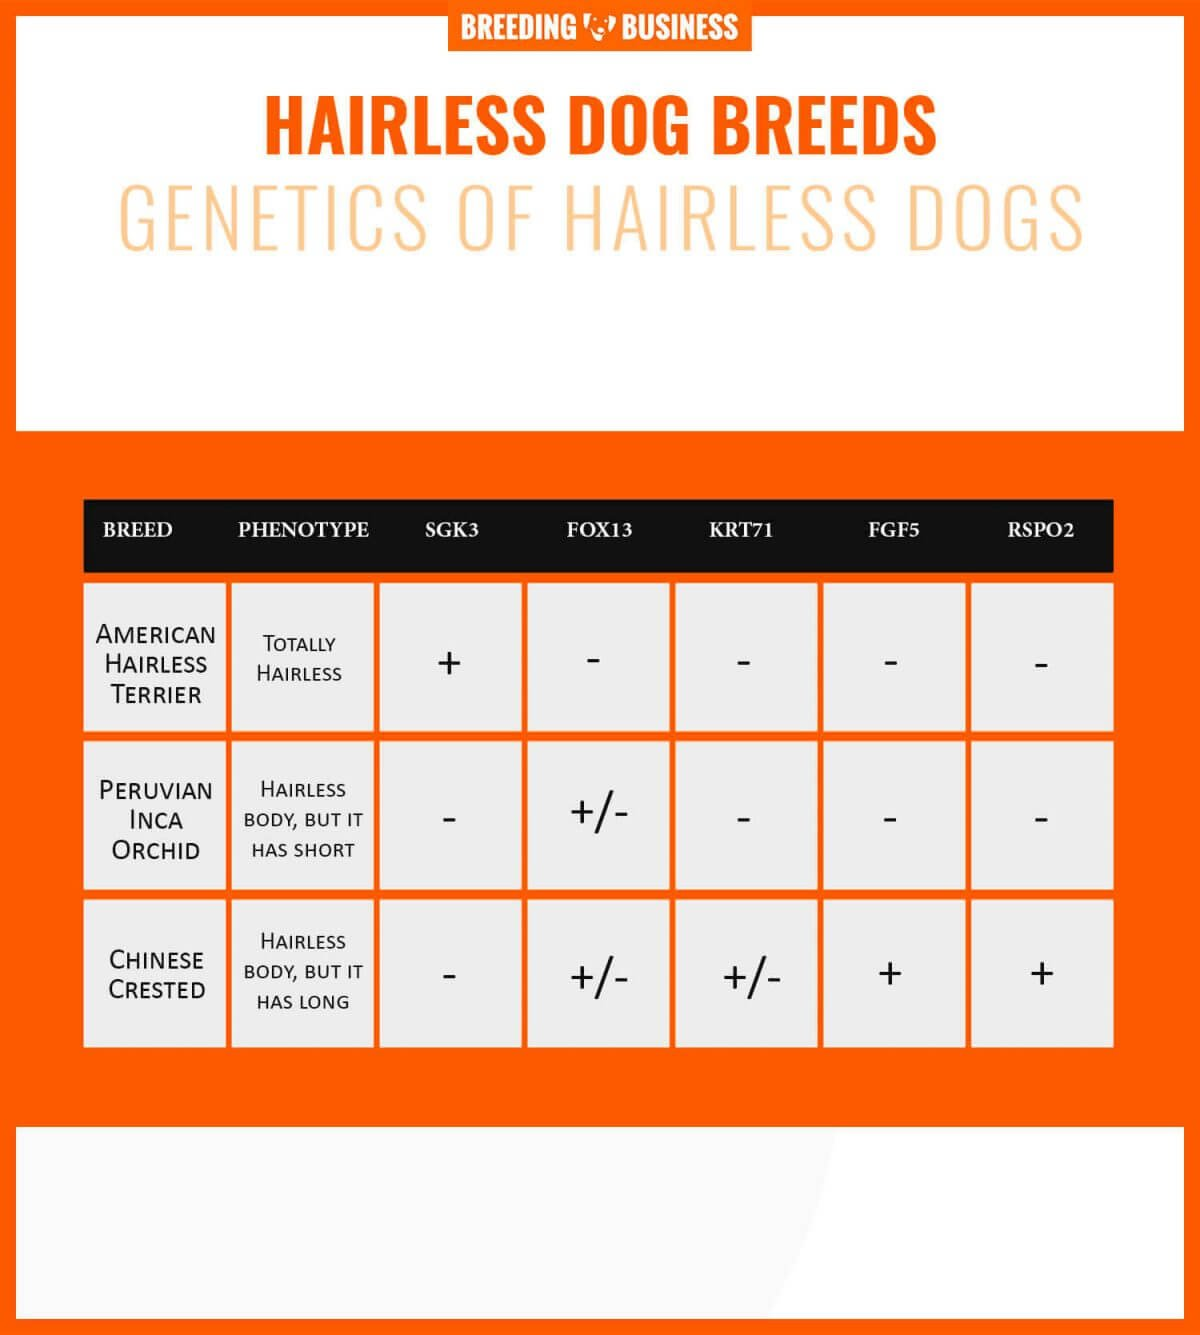 Genetics of hairless dogs.